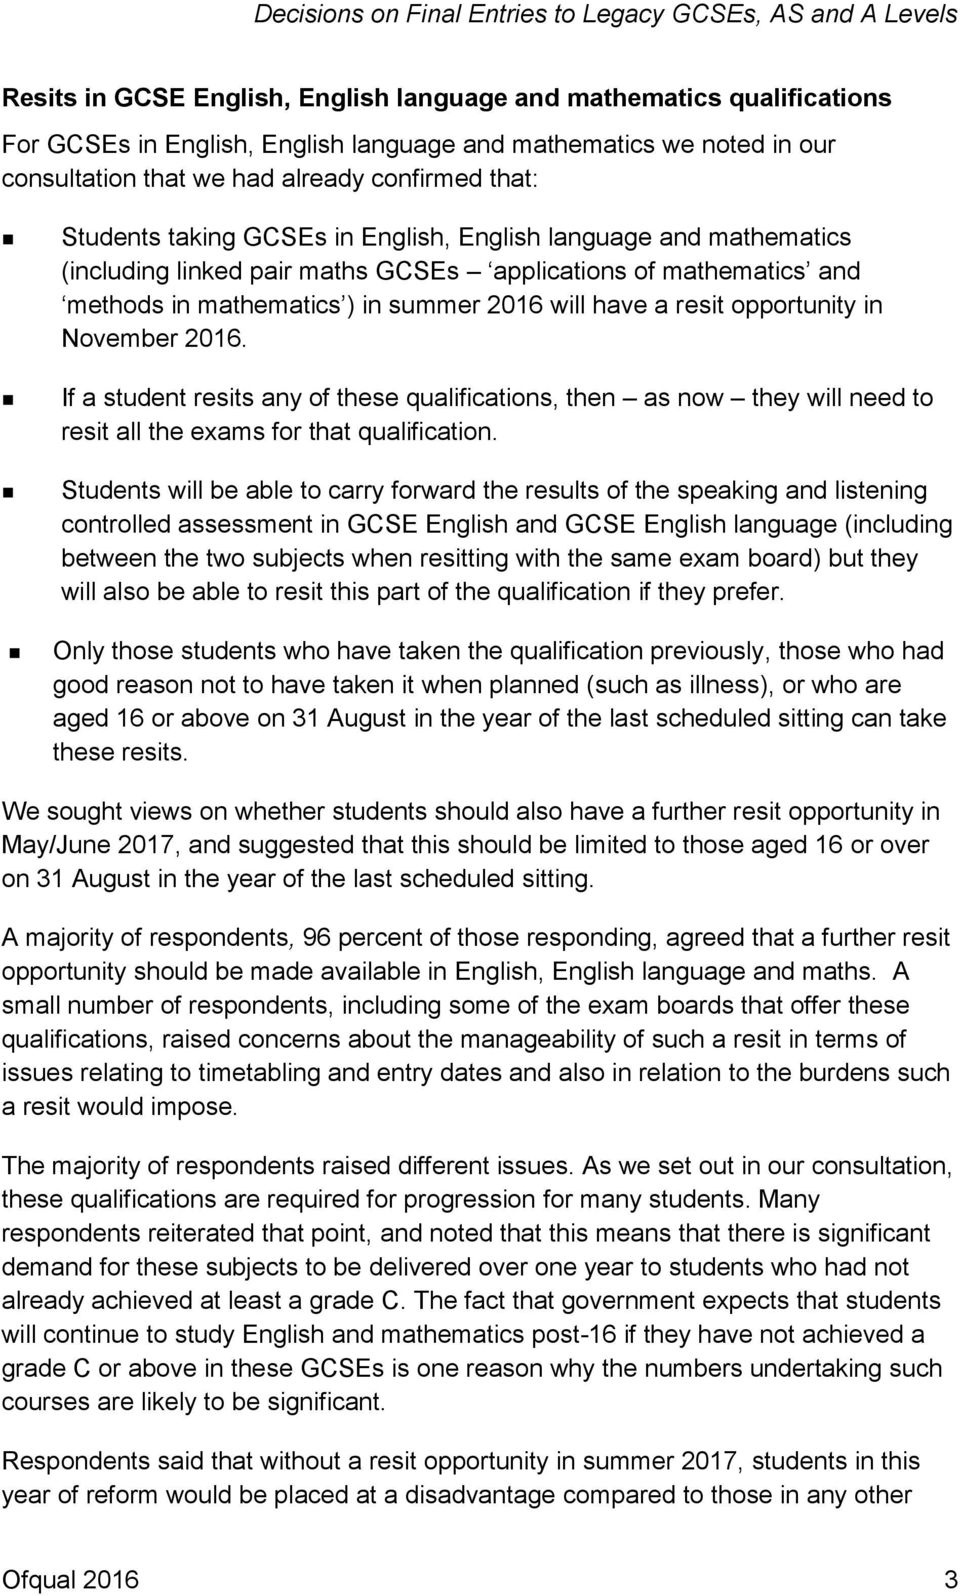 opportunity in November 2016. If a student resits any of these qualifications, then as now they will need to resit all the exams for that qualification.